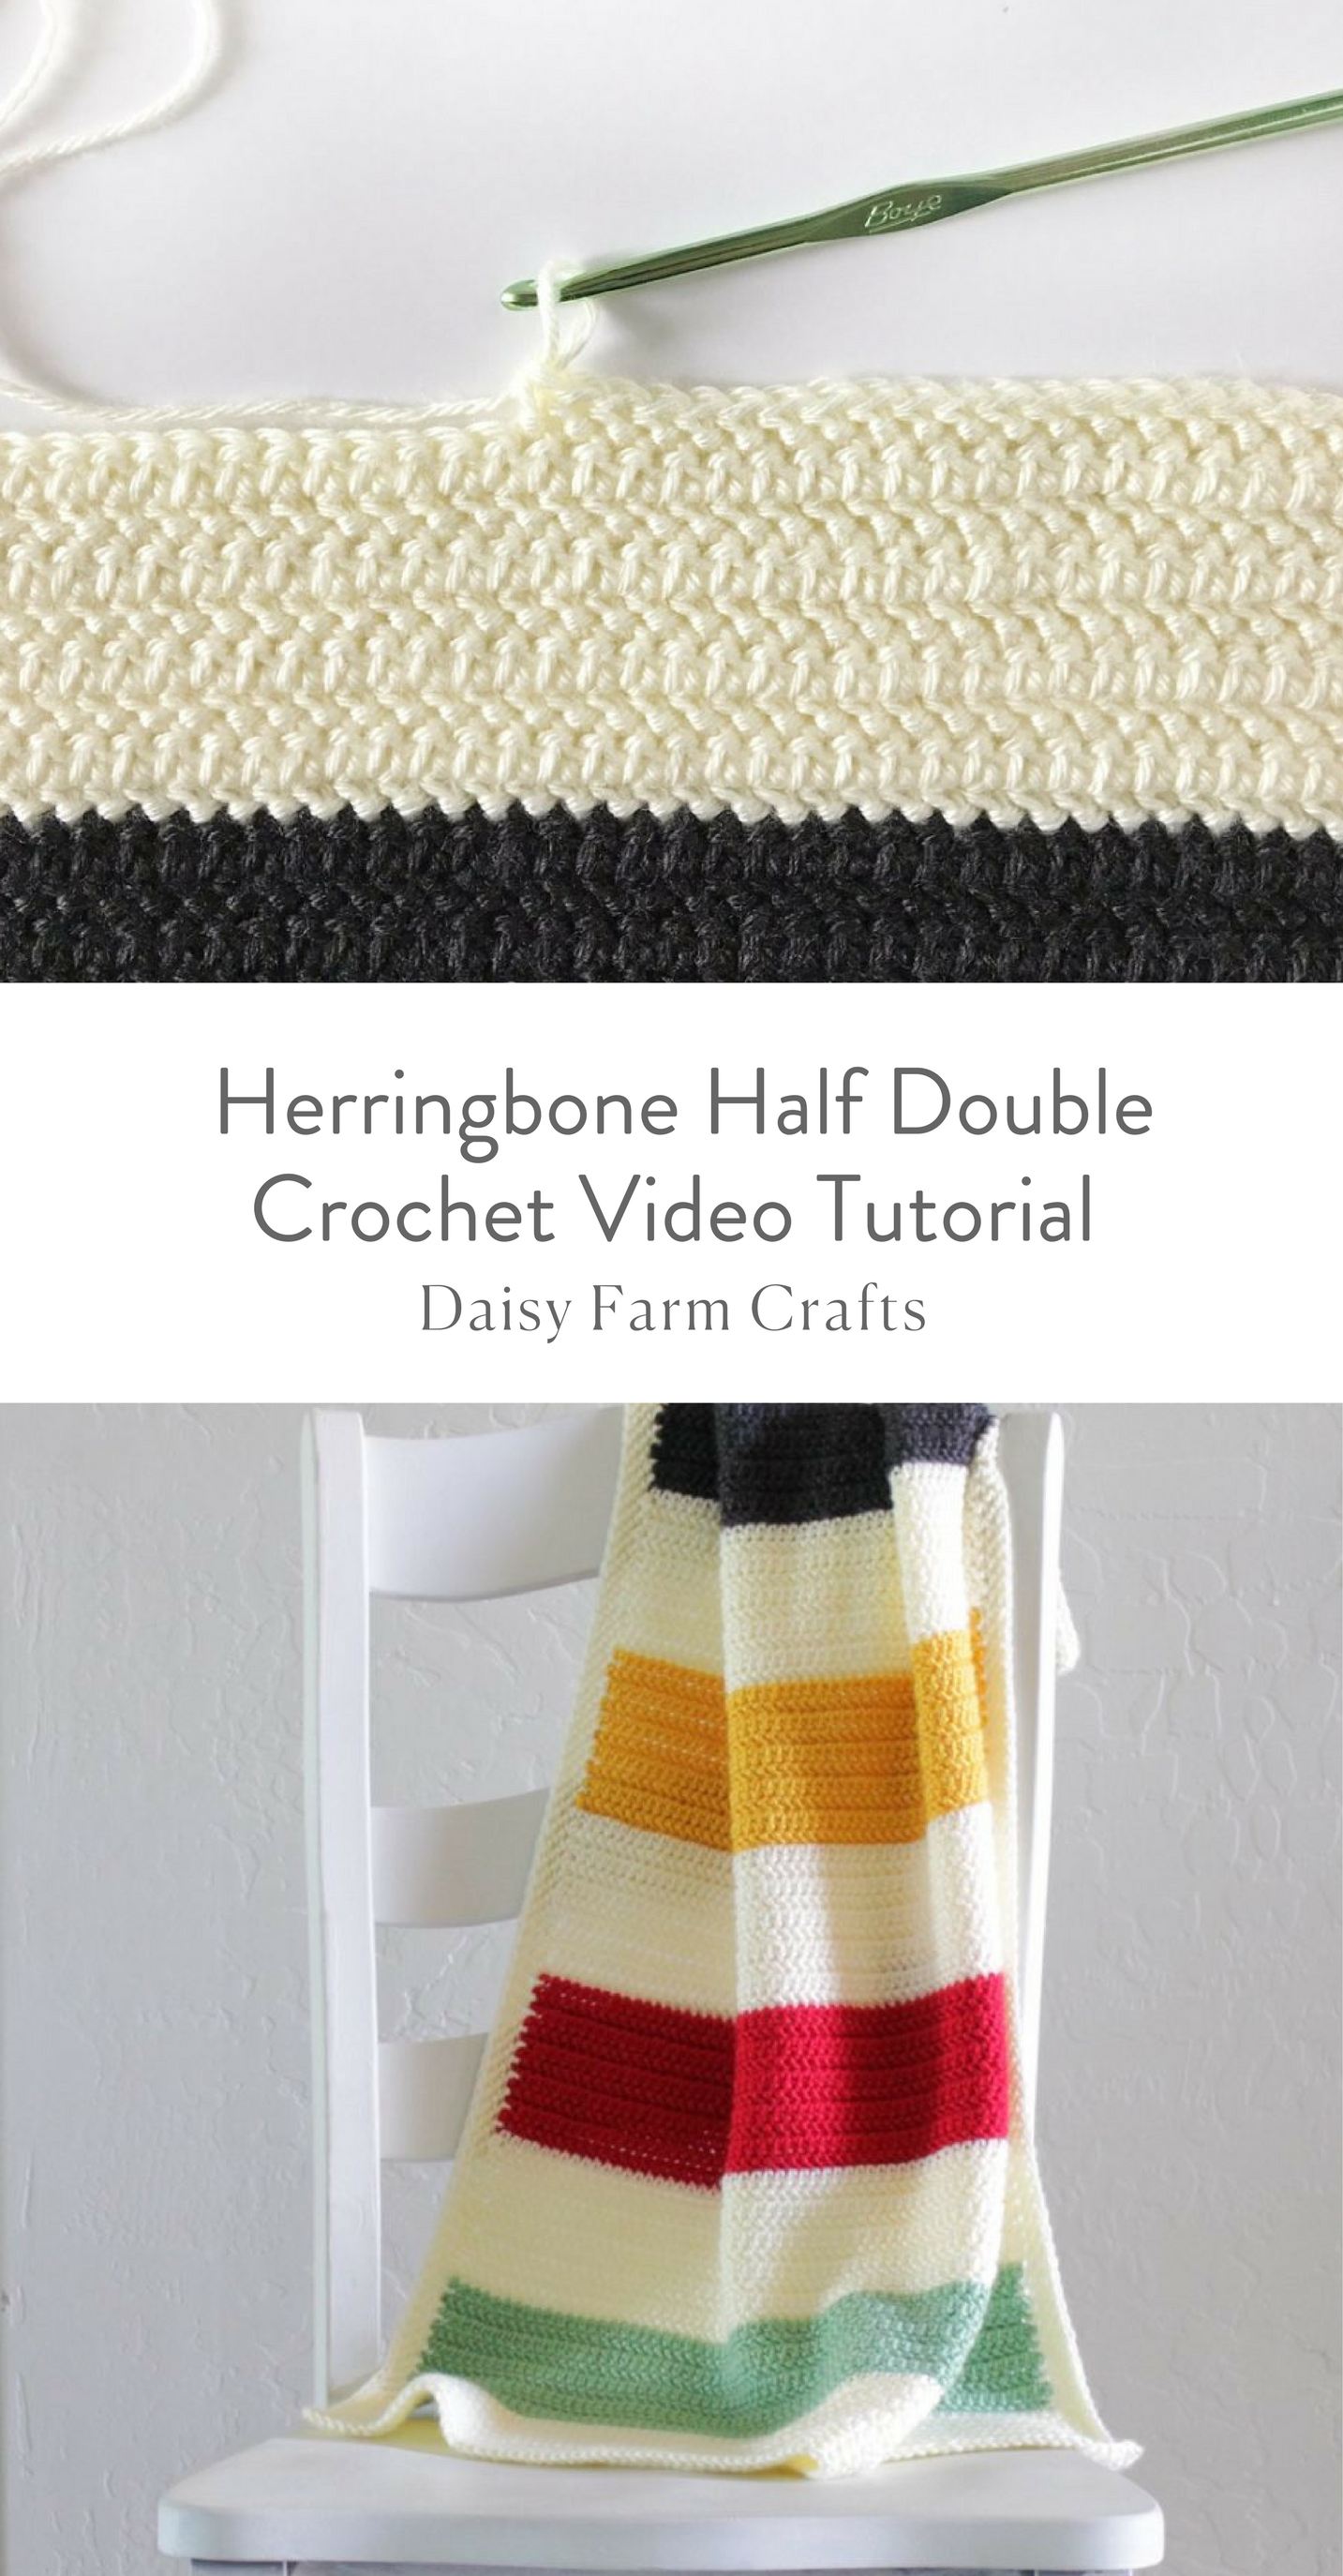 Herringbone Half Double Crochet Video Tutorial Knittingtutorials With Images Half Double Crochet Stitch Crochet Stitches For Blankets Crochet